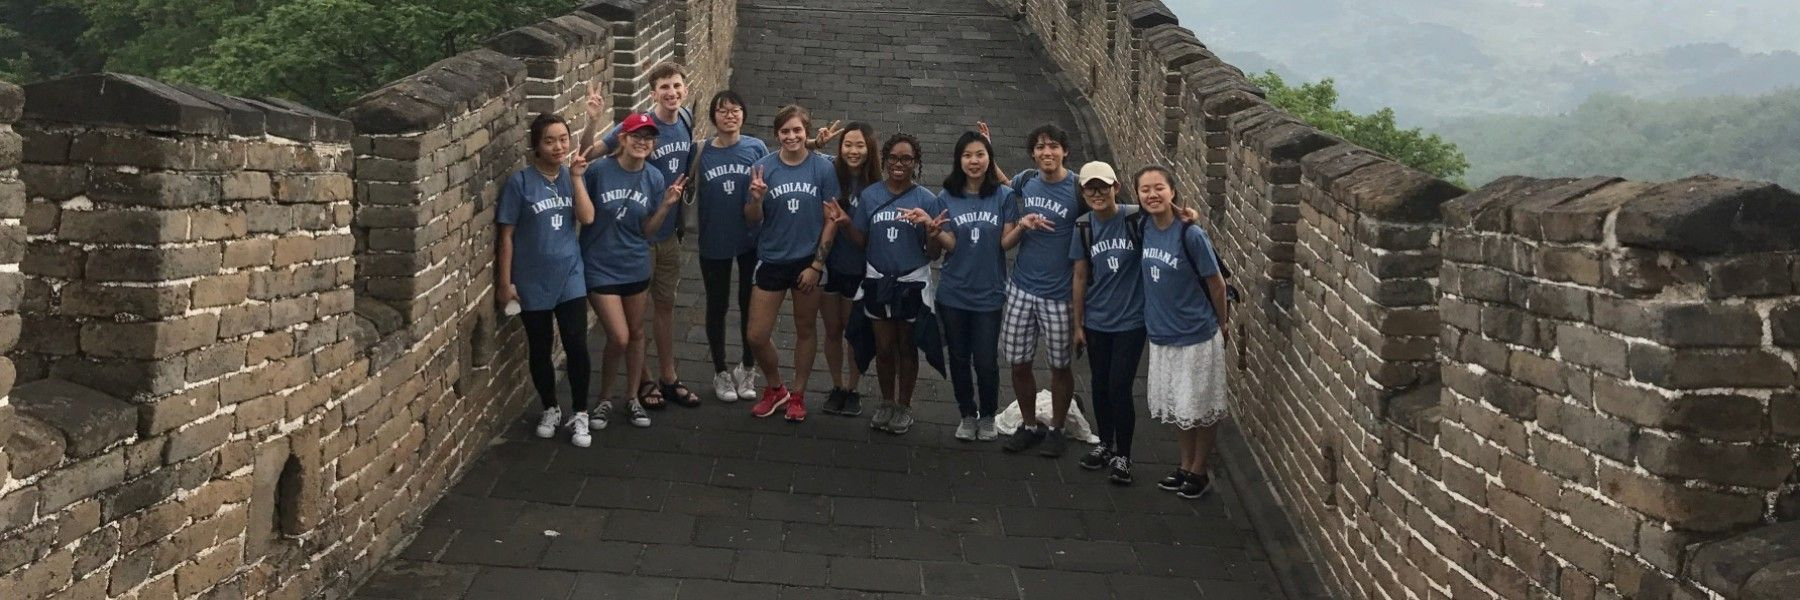 Lucas Adams joins classmates in visiting the Great Wall of China.